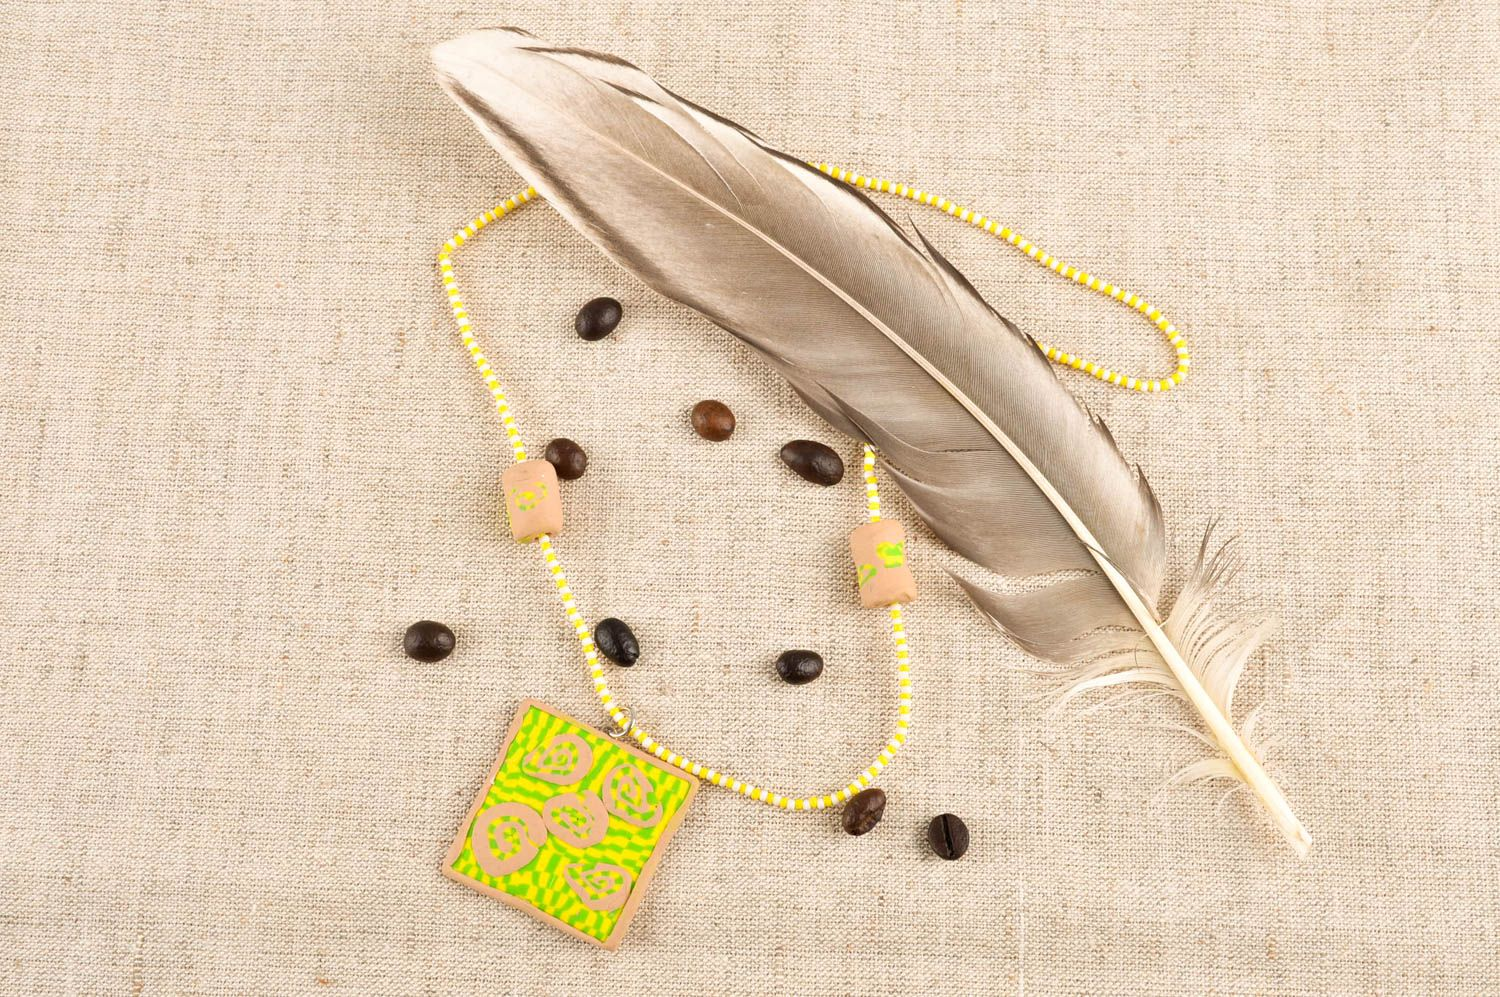 Polymer clay pendant necklace handmade charm necklace gift ideas for women  photo 1